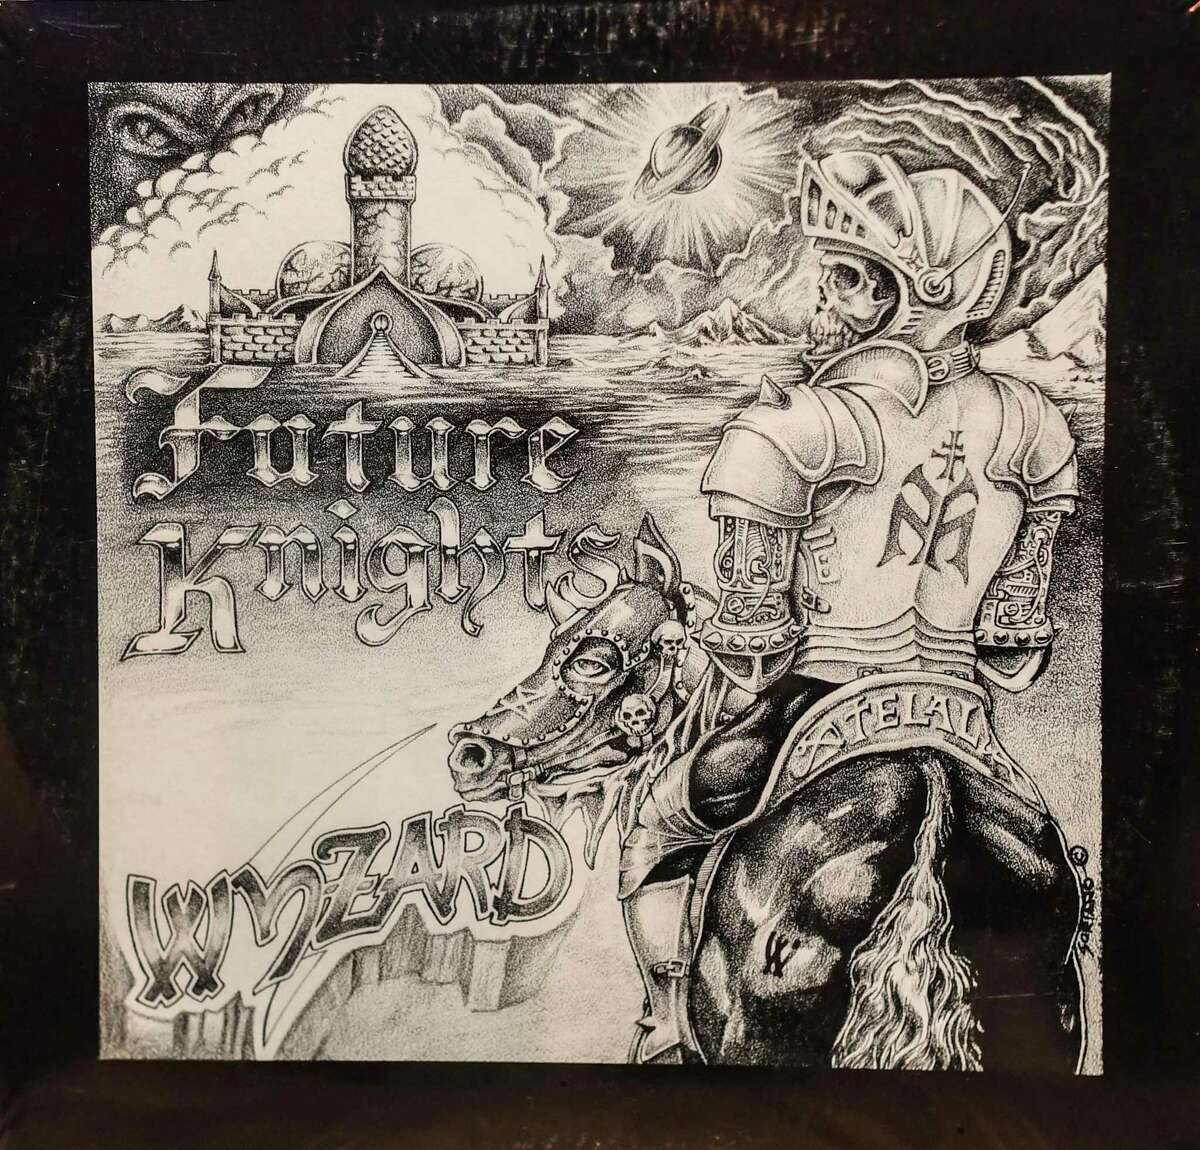 """The album """"Future Knights"""" by the San Antonio metal band Wyzard was recorded in 1983 in San Antonio and released in 1984. Only 100 copies were pressed."""